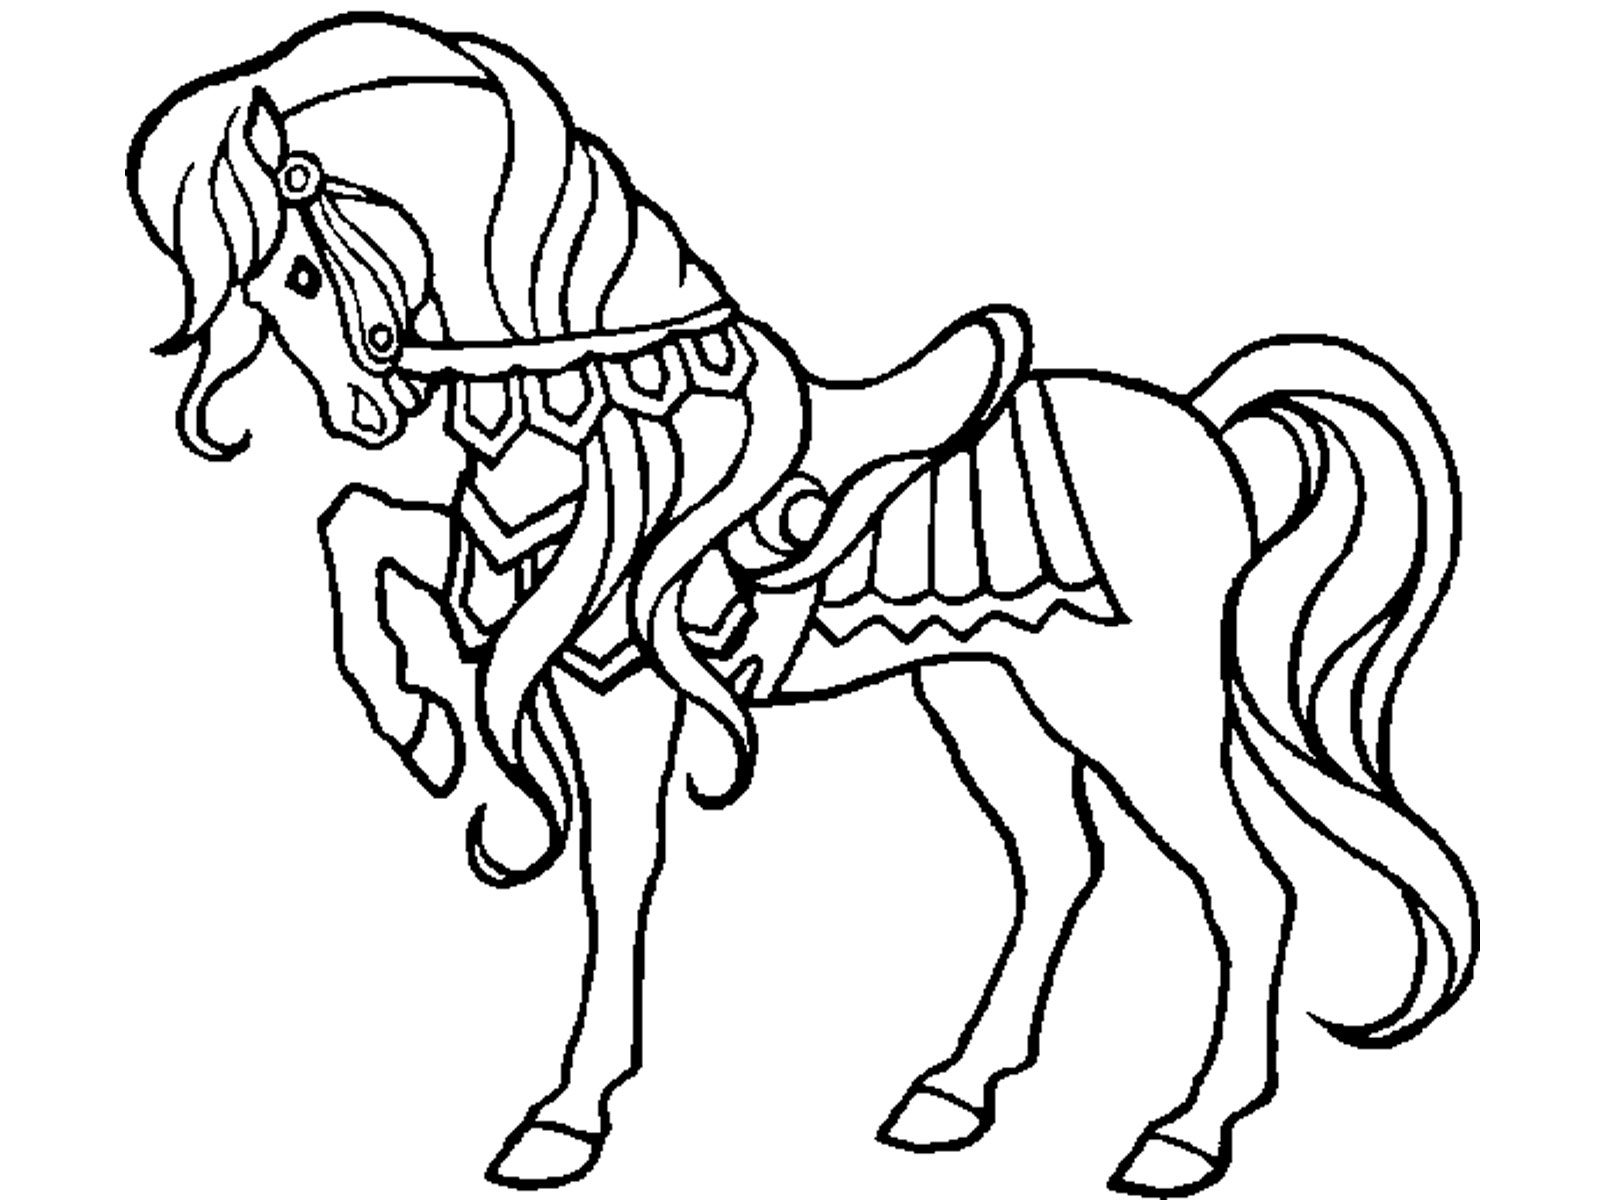 horse print out coloring pages free animals horse printable coloring pages for print pages horse out coloring